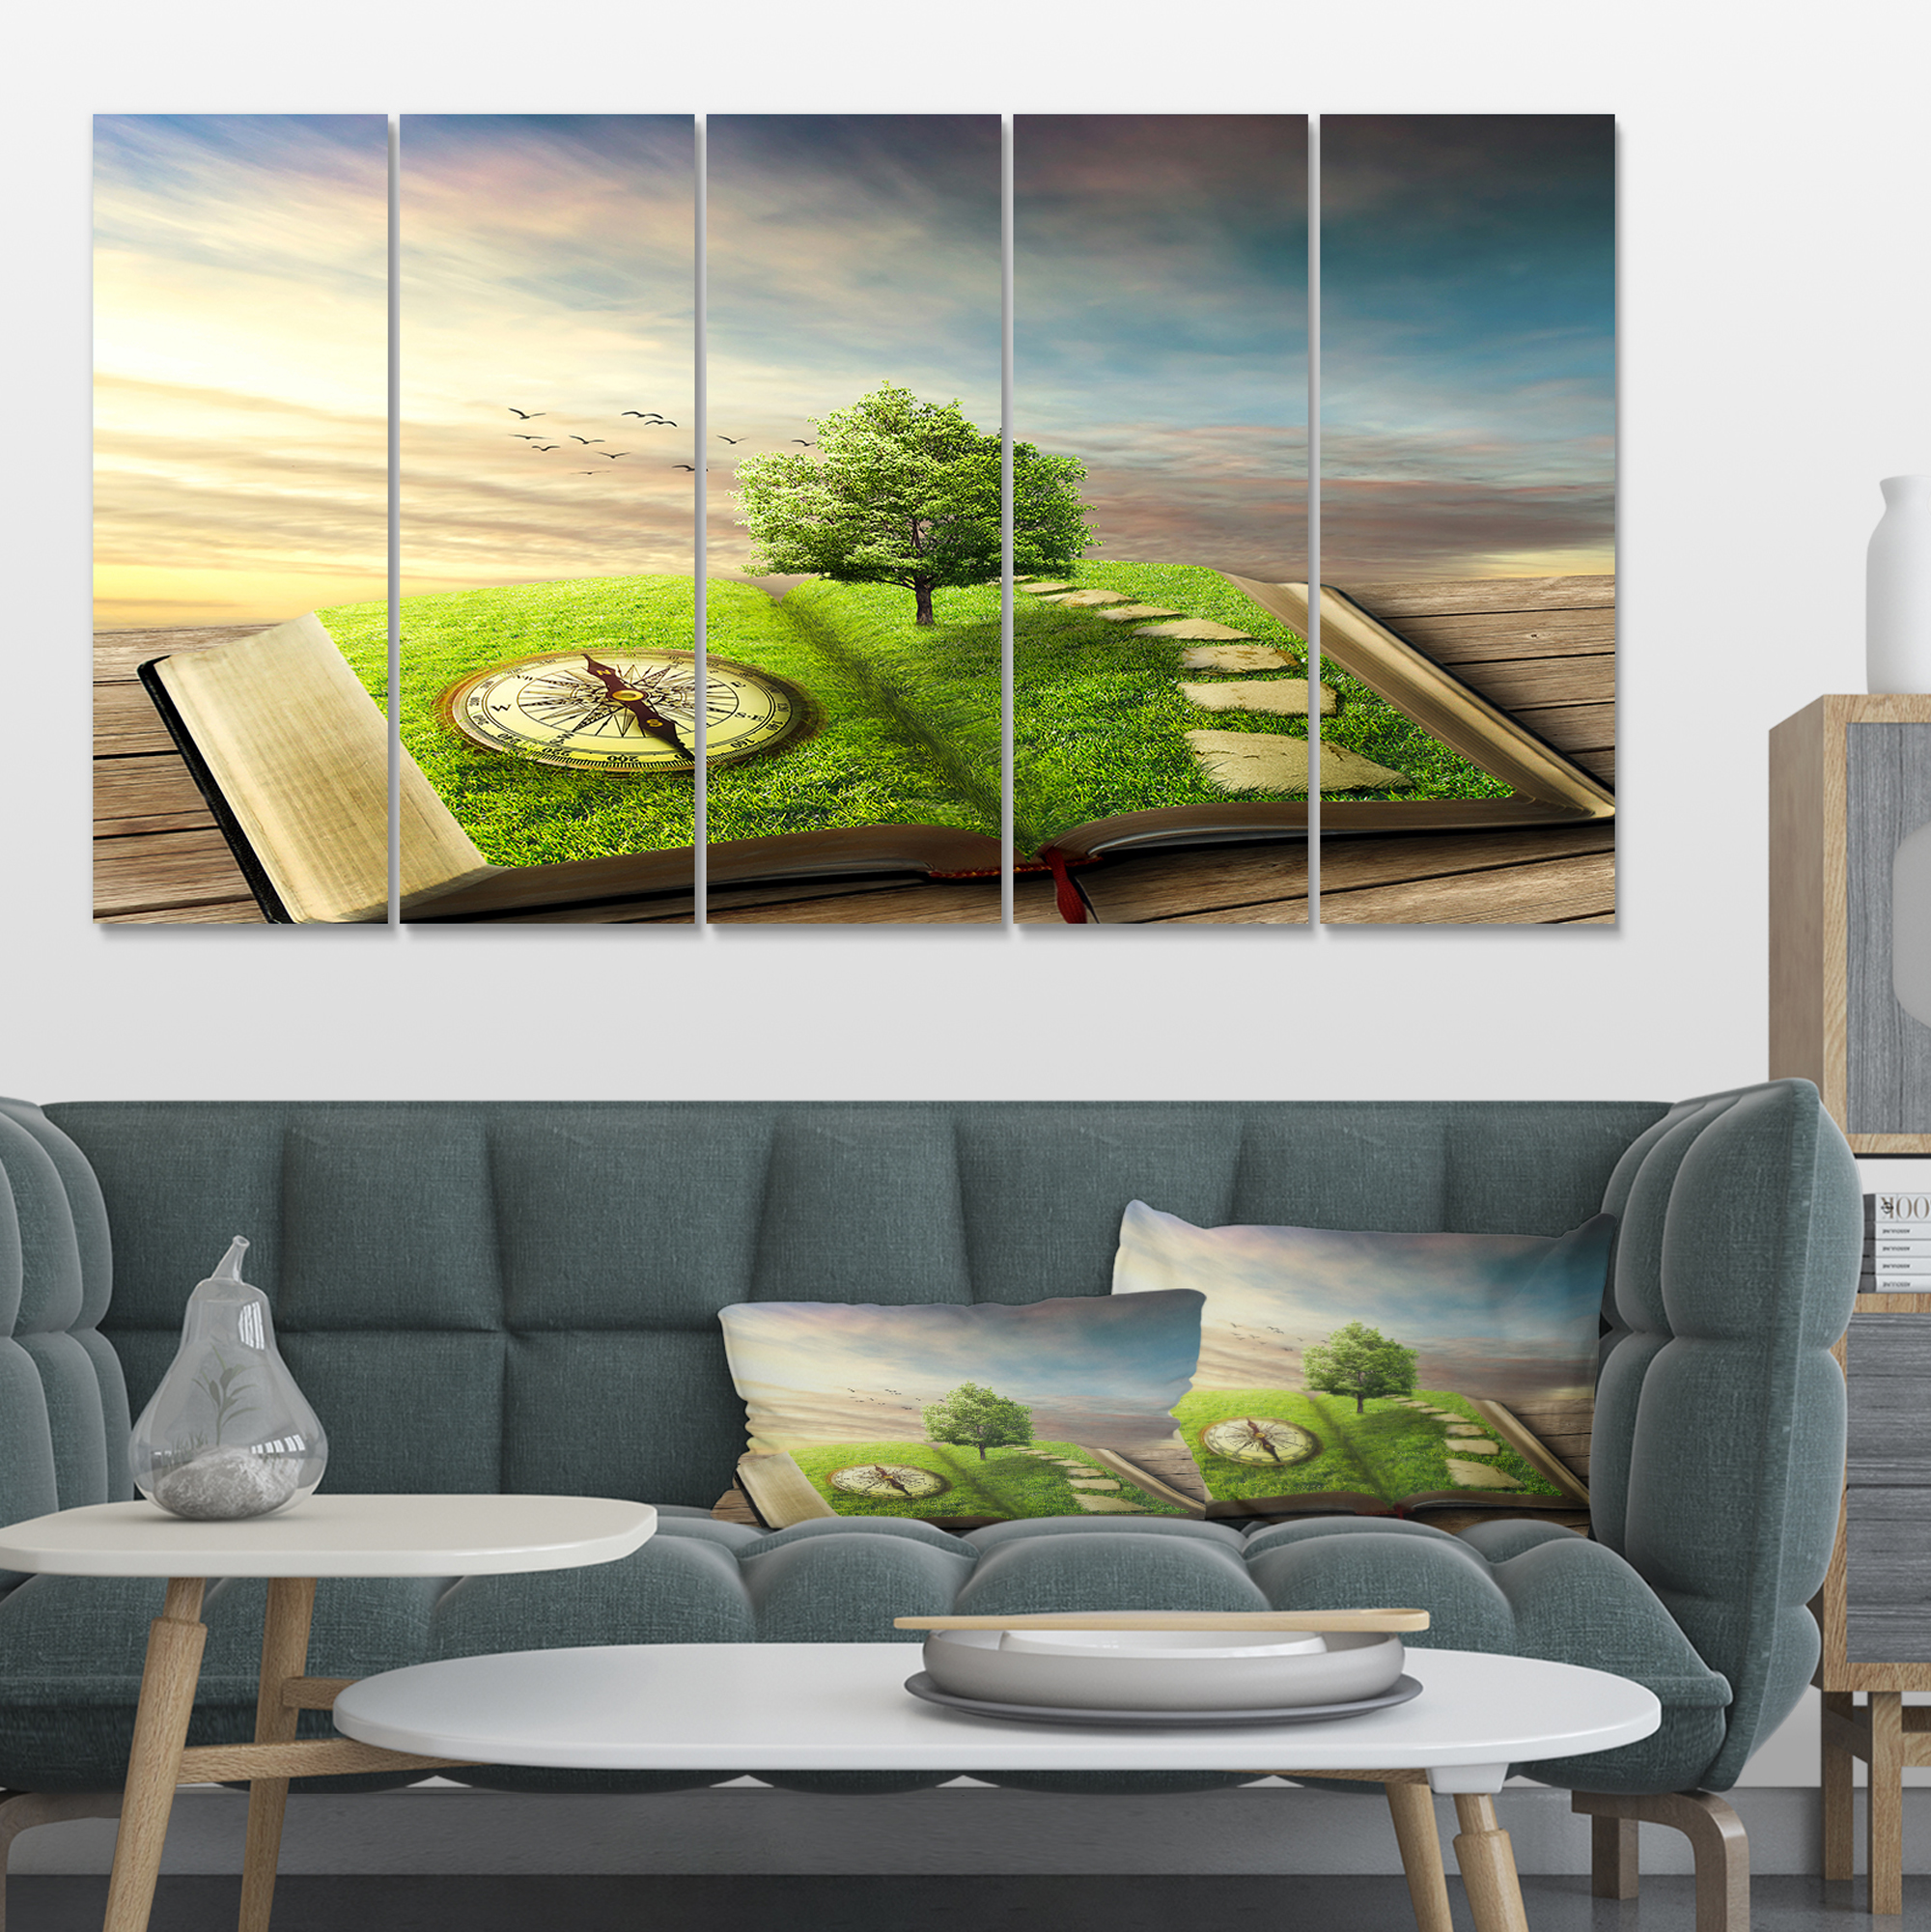 Book of Life with Greenery - Landscape Canvas Art Print - image 3 de 3